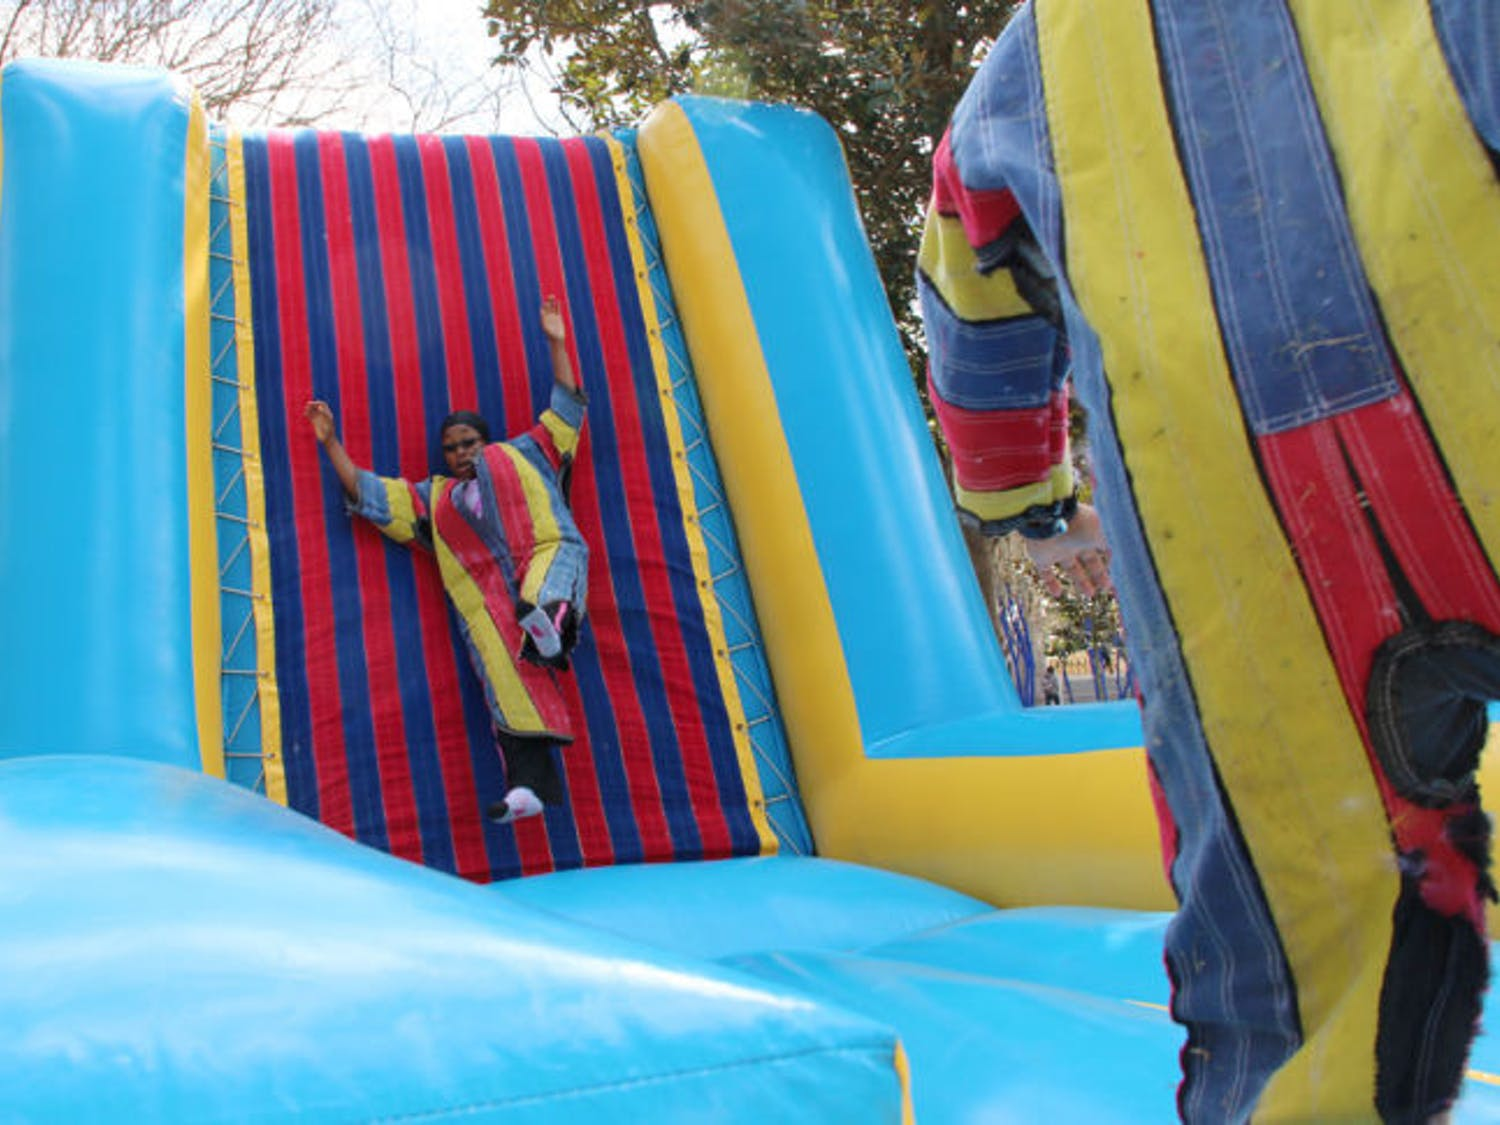 First-year acting graduate student Oluchi Nwokocha, 23, descends from a Velcro wall on the North Lawn Tuesday afternoon. The wall was part of UF Engineers Week's Field Day Extravaganza.